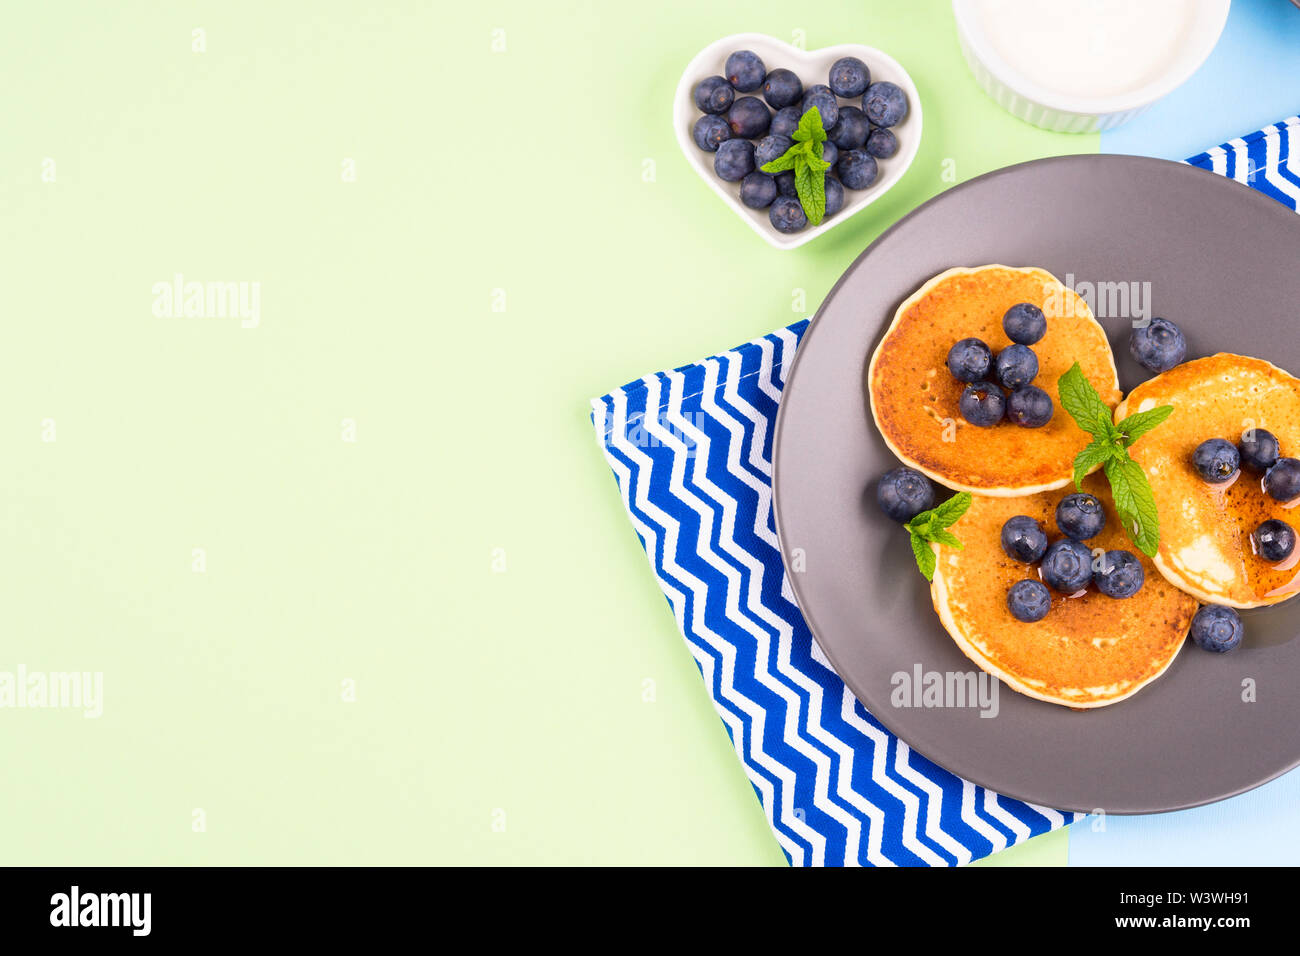 Pancakes served with fresh blueberries on gray plate over geometrical background. Healthy home made breakfast concept - Stock Image